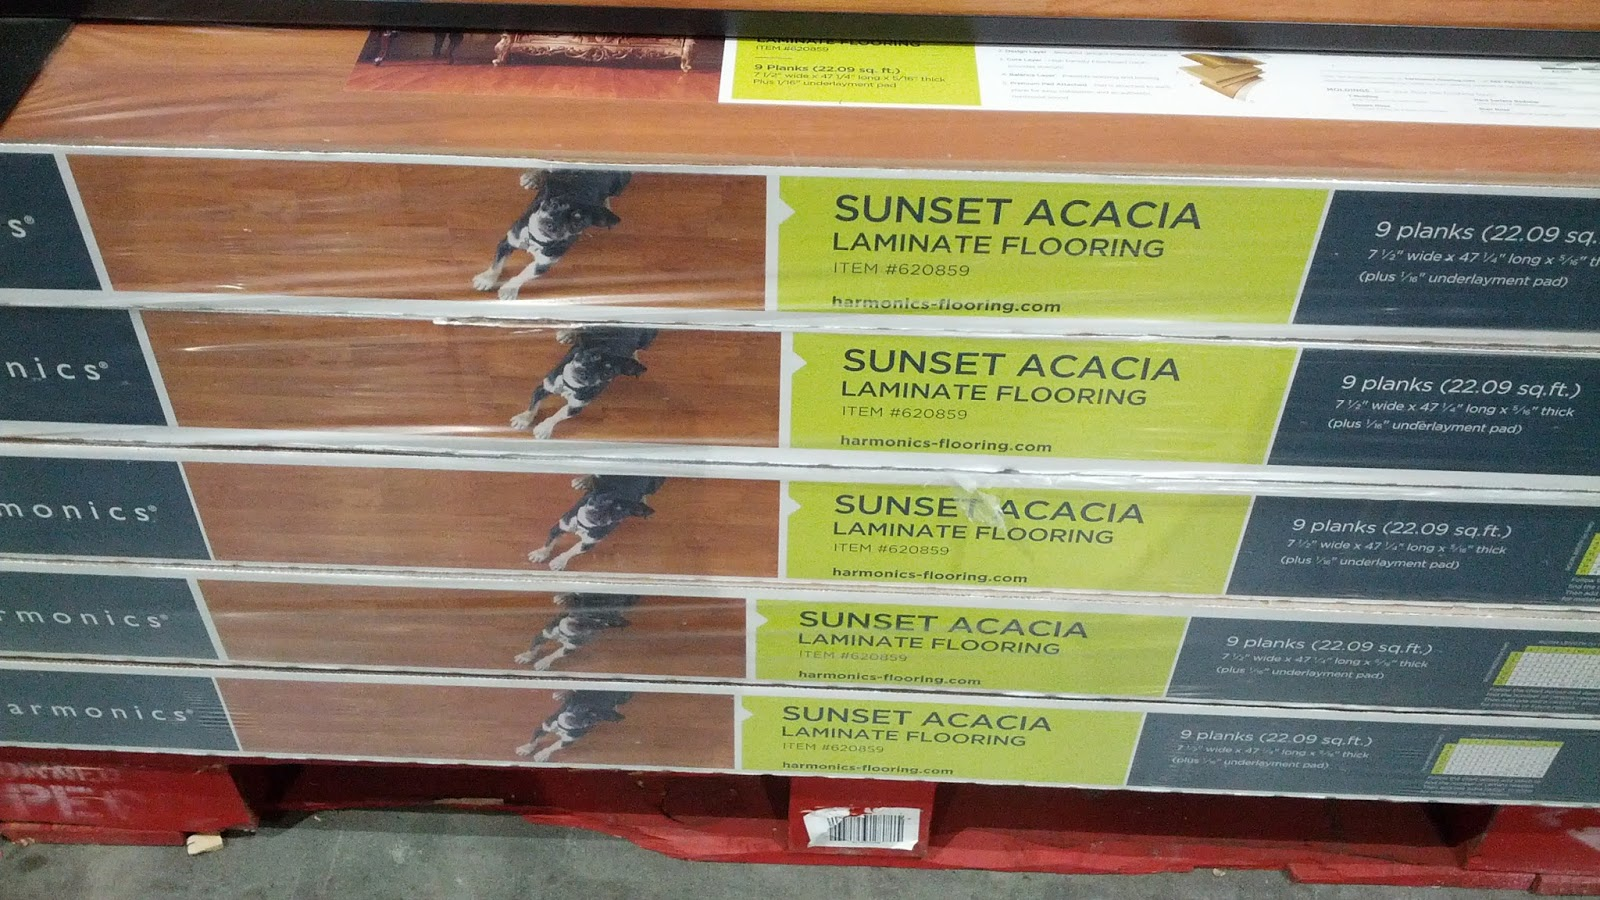 Harmonics Unilin Sunset Acacia Laminate Flooring With Pad Attached Product Info